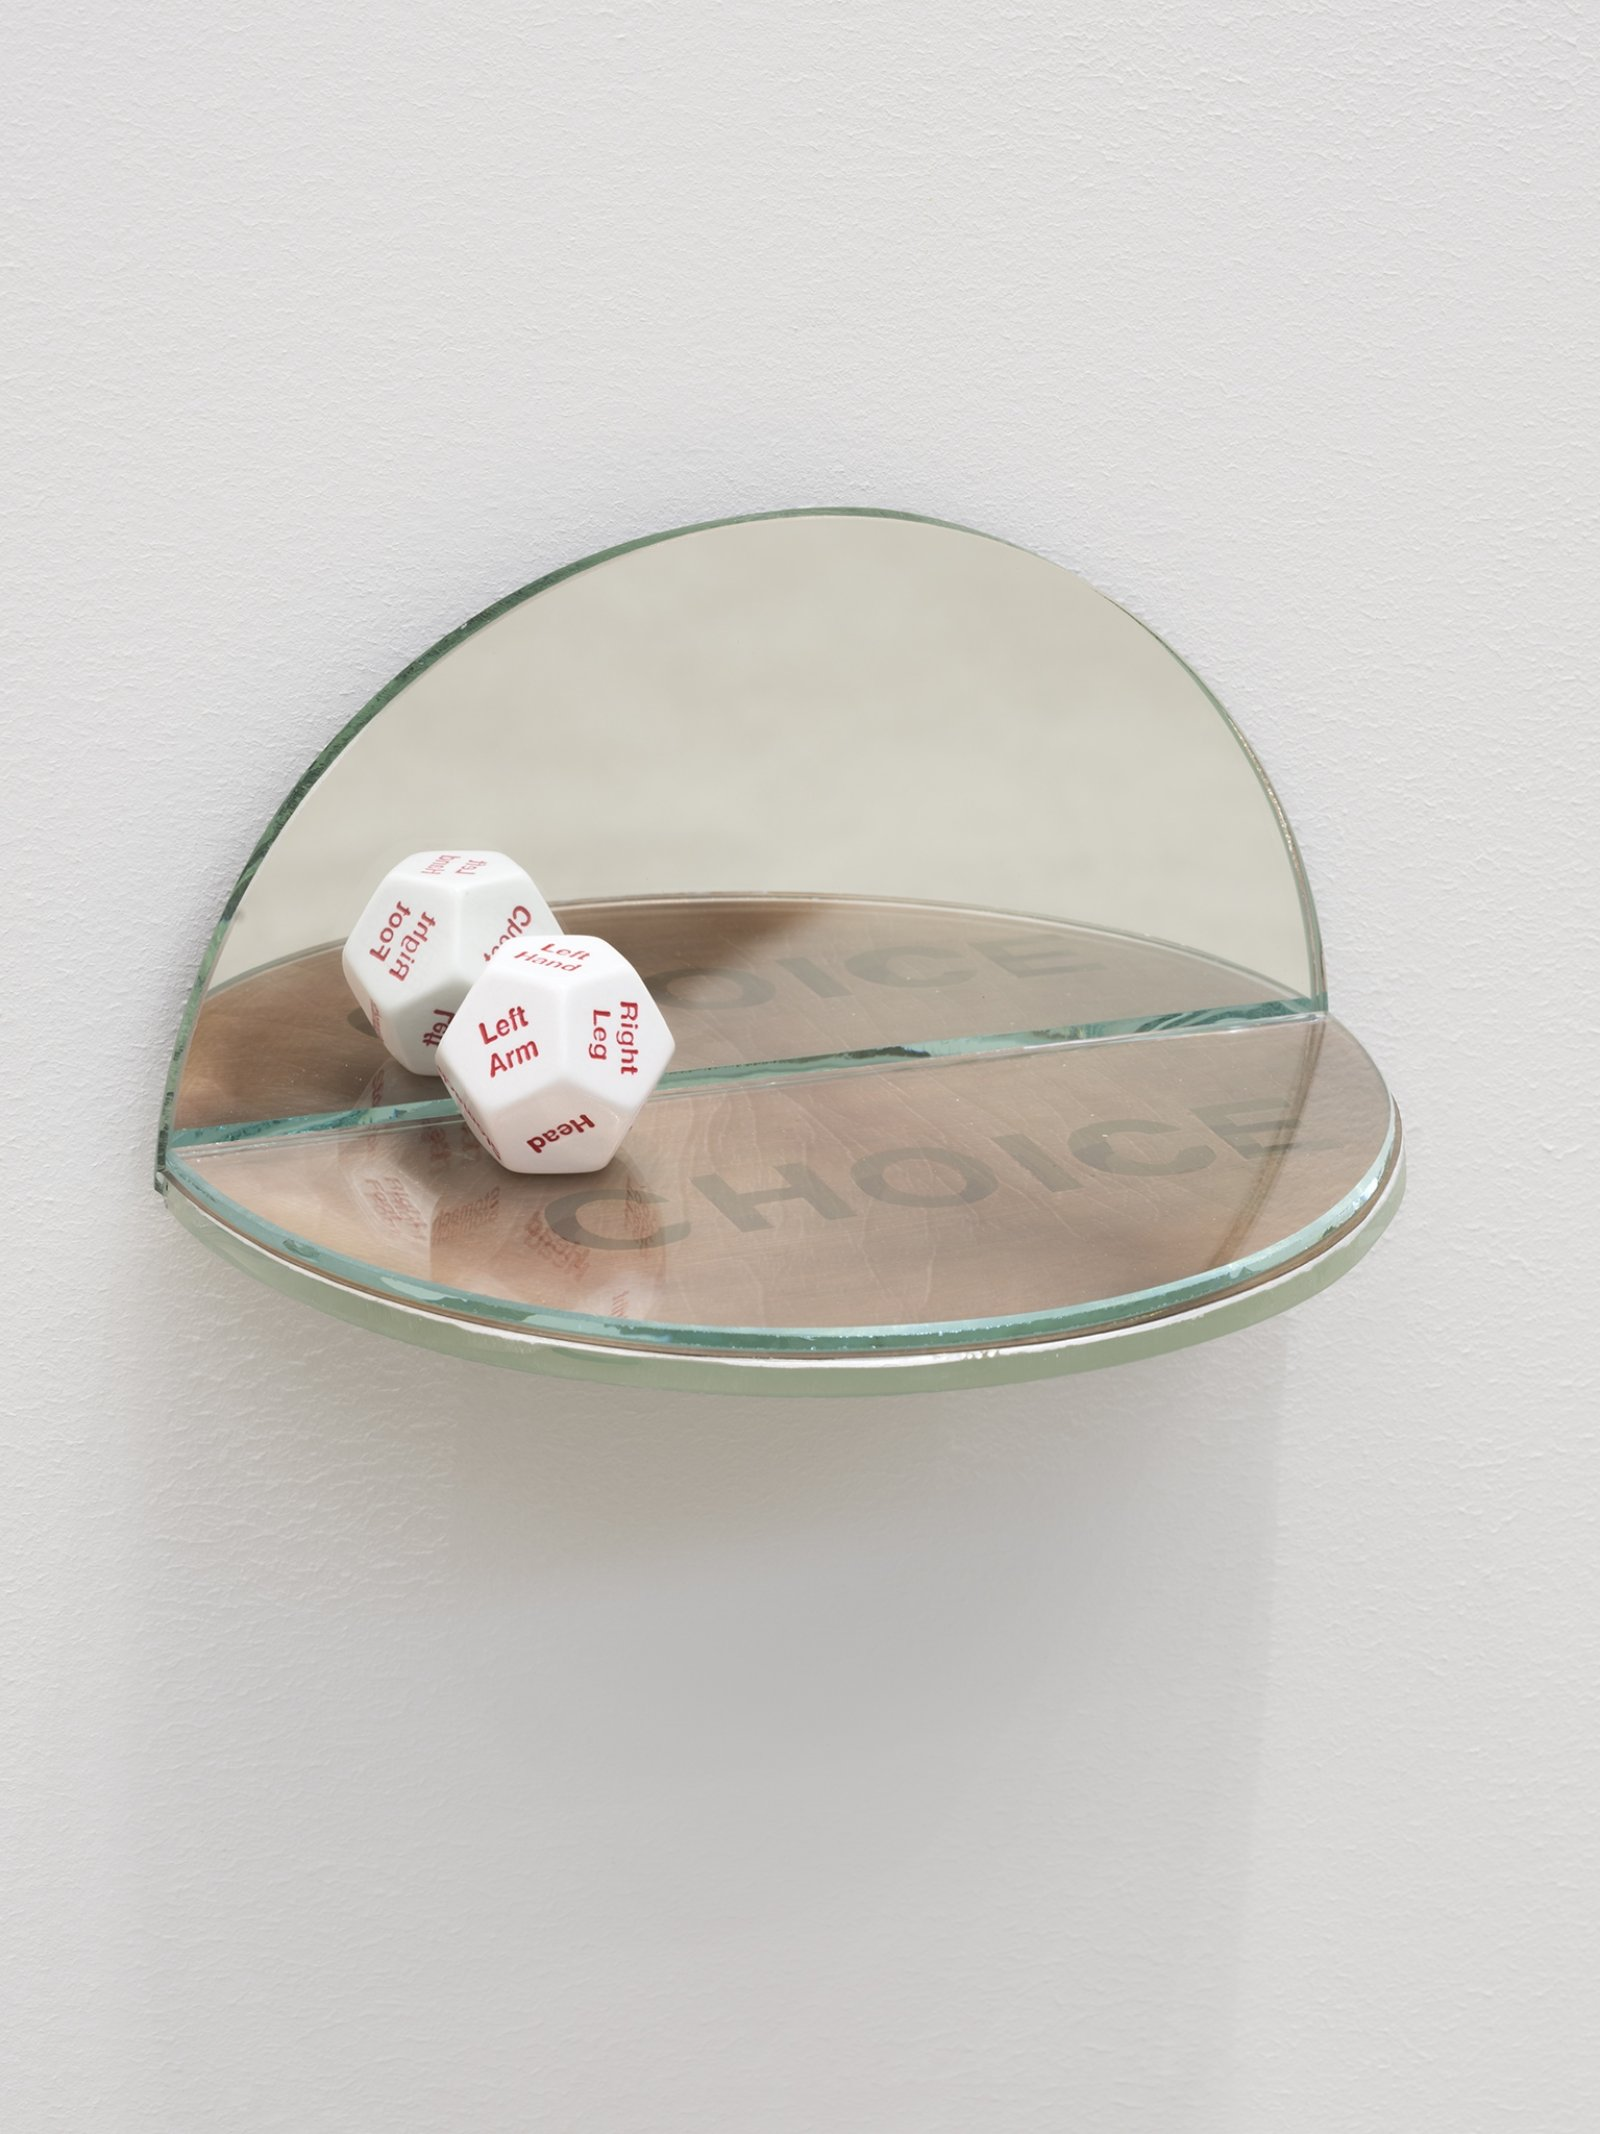 Julia Feyrer, The Ambidextrous Universe: touching, 2018, mirror, liquid mirror, glass, fujiclear transparency, 12-sided die, 4 x 4 x 7 in. (9 x 9 x 18 cm)